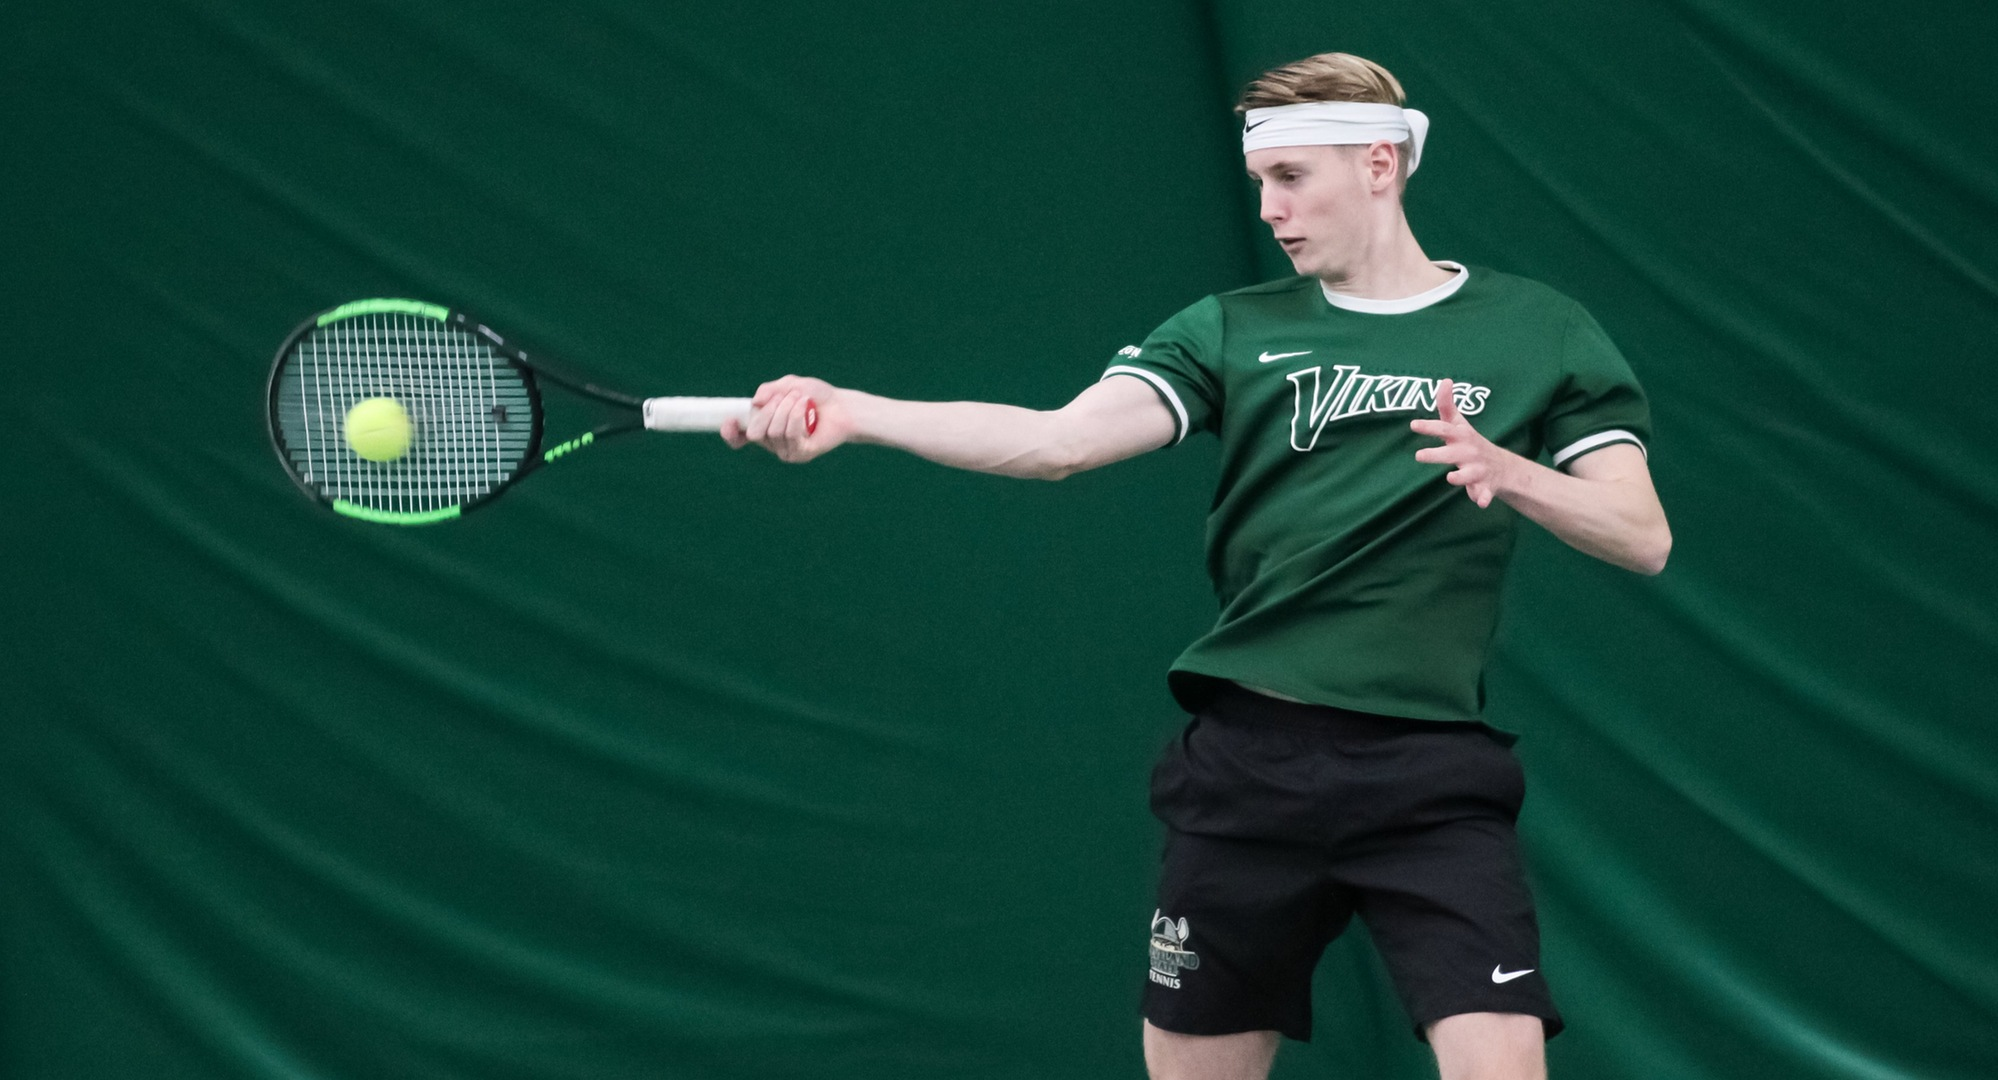 Vikings Pick Up 6-1 Victory At Duquesne To Close Out Roadswing